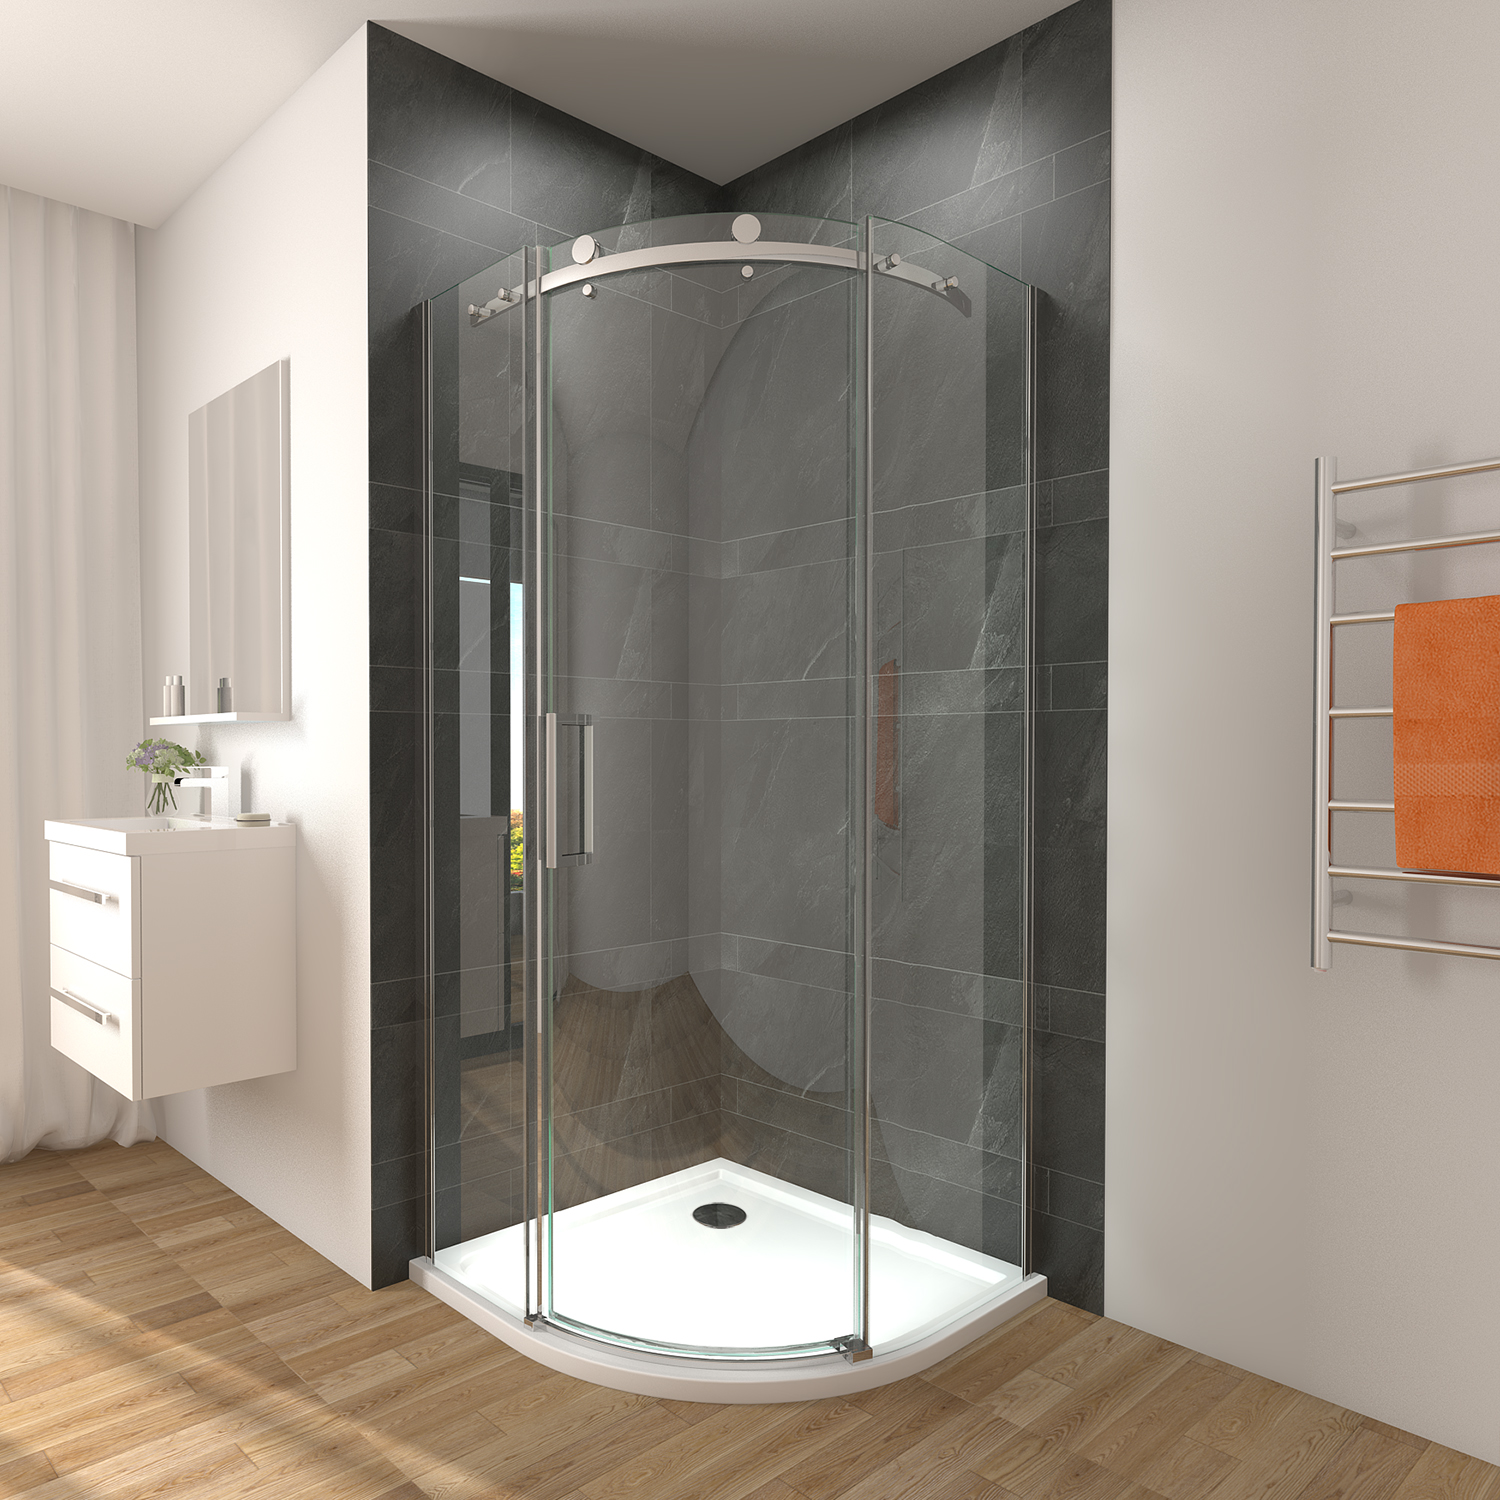 Details About 900x900x1950mm Frameless Curved Shower Screen Enclosure Round Sliding Door